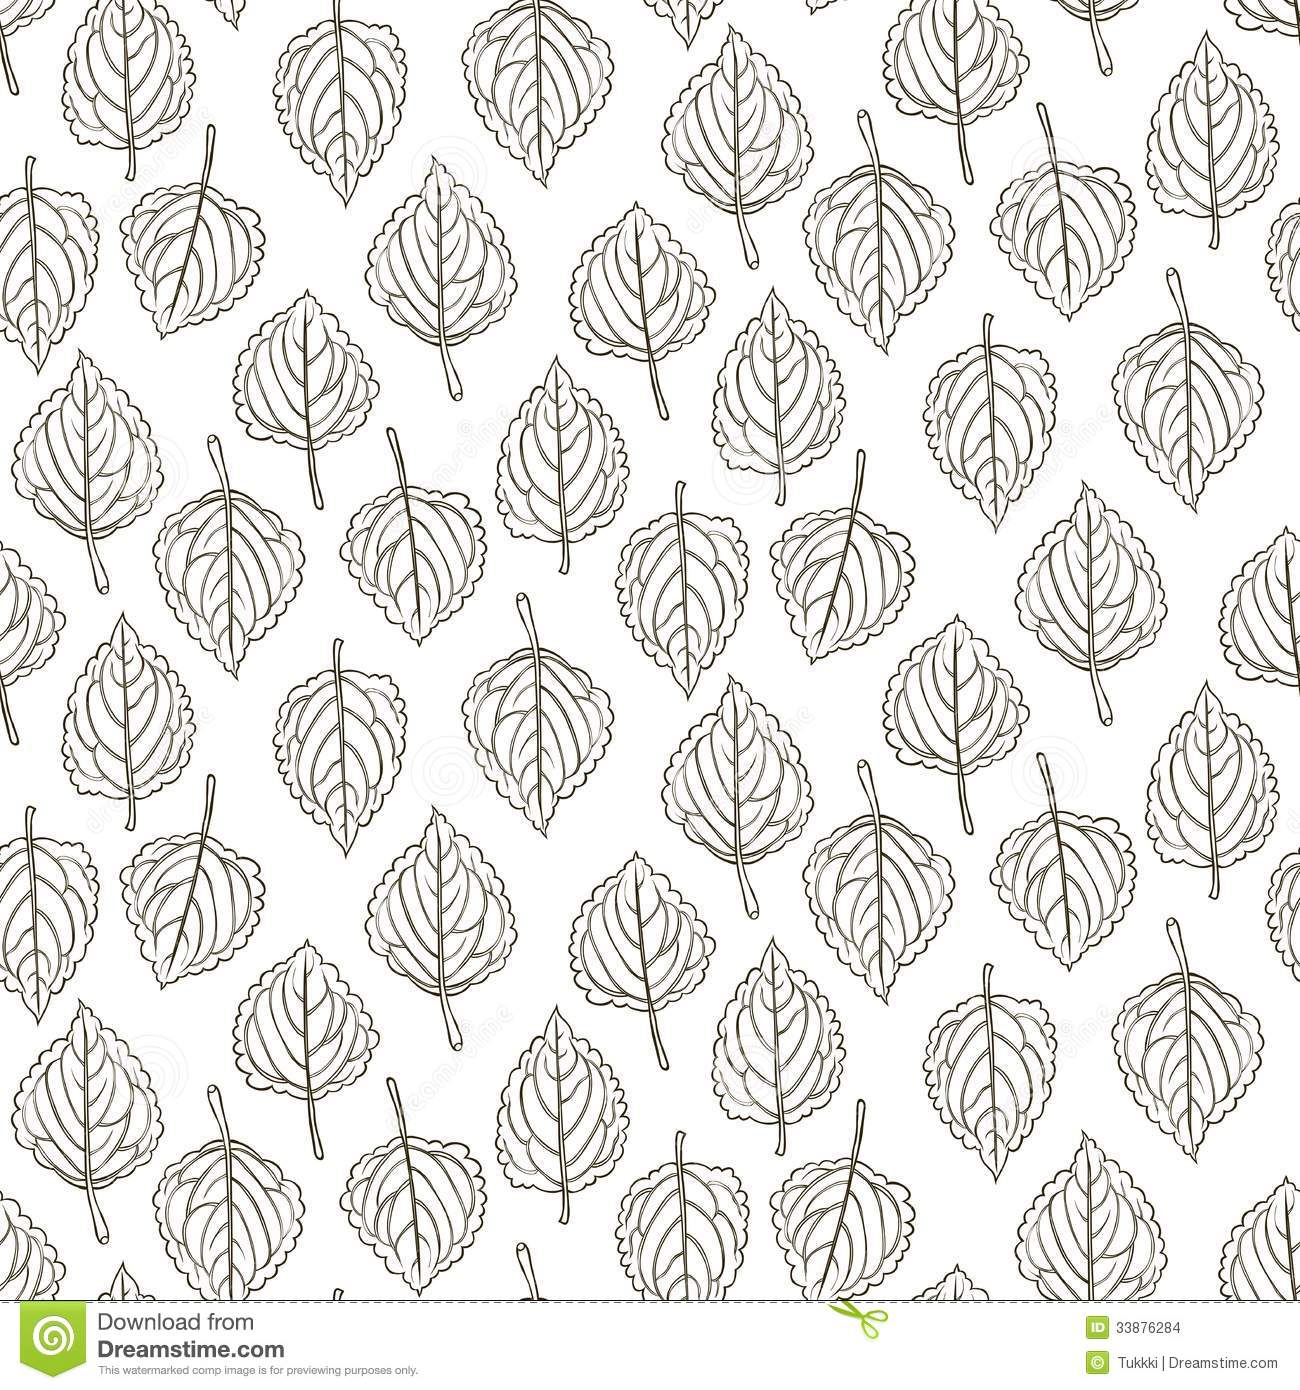 Elegant Pattern With Leafs Drawn In Thin Lines Stock